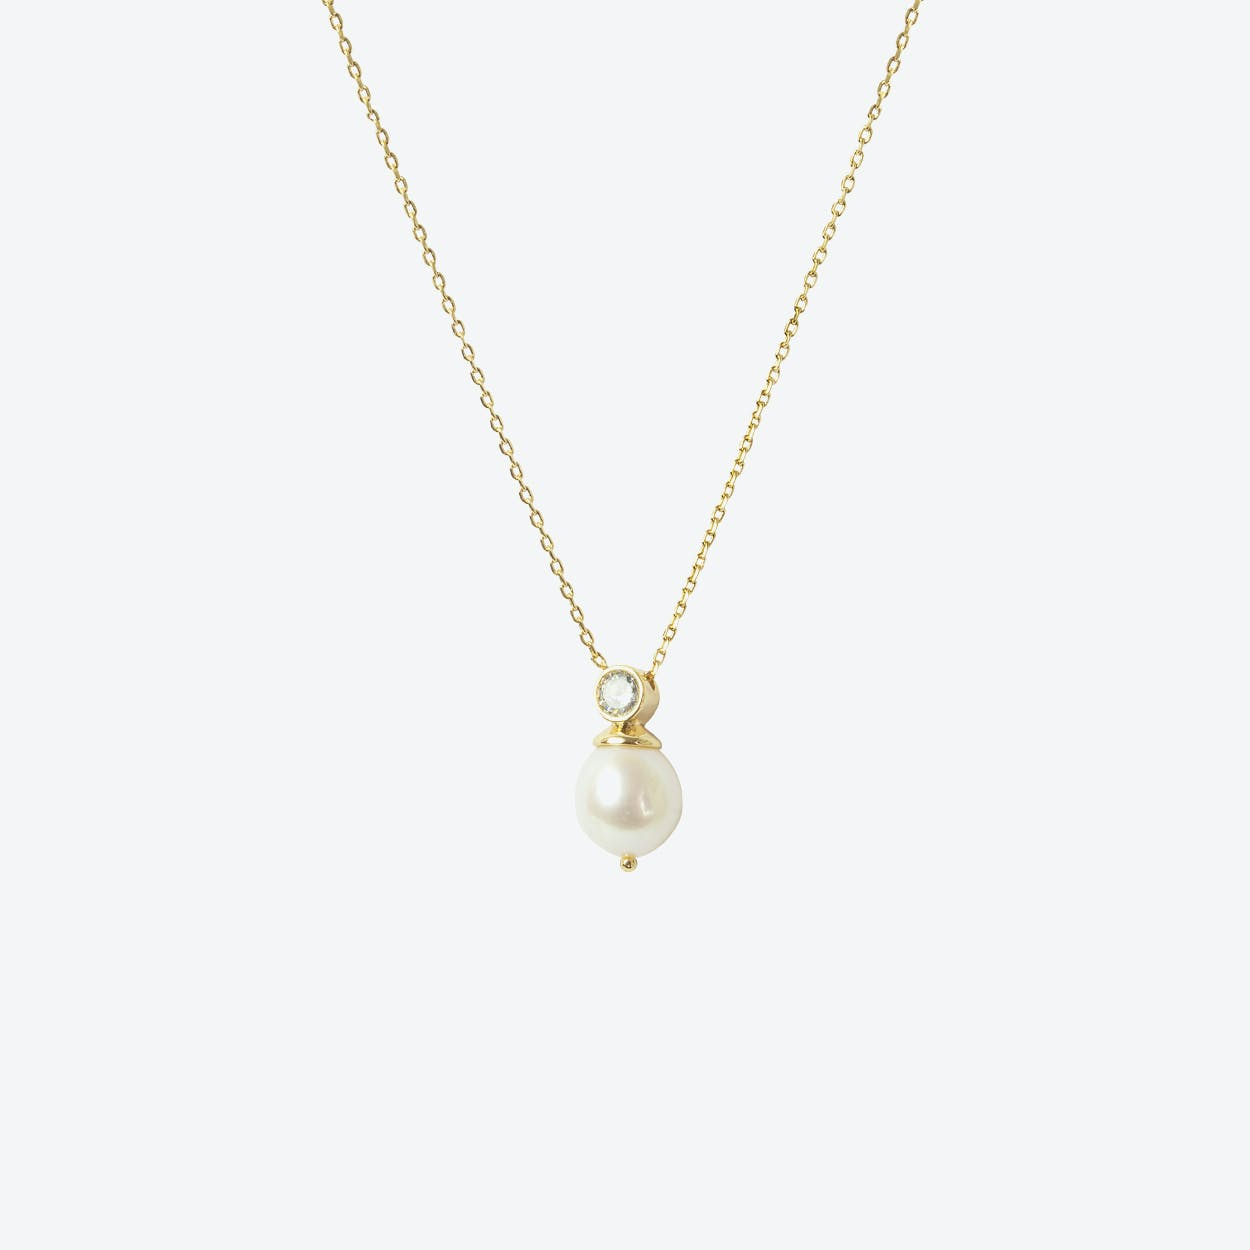 18k Gold Cultured Pearl Short Necklace